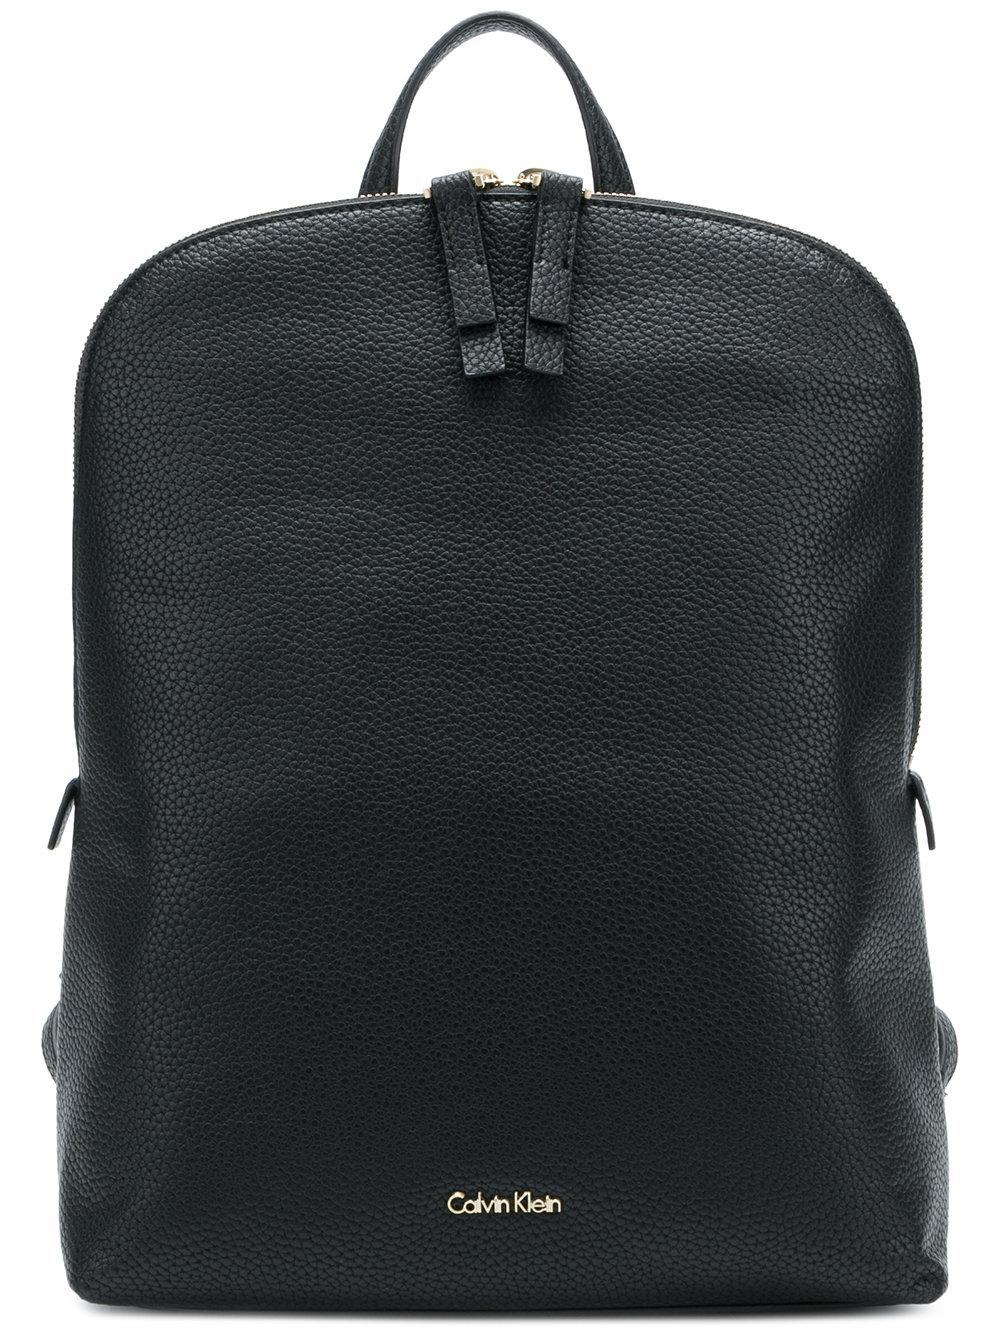 Calvin Klein 205W39Nyc Minimalist Oversized Backpack